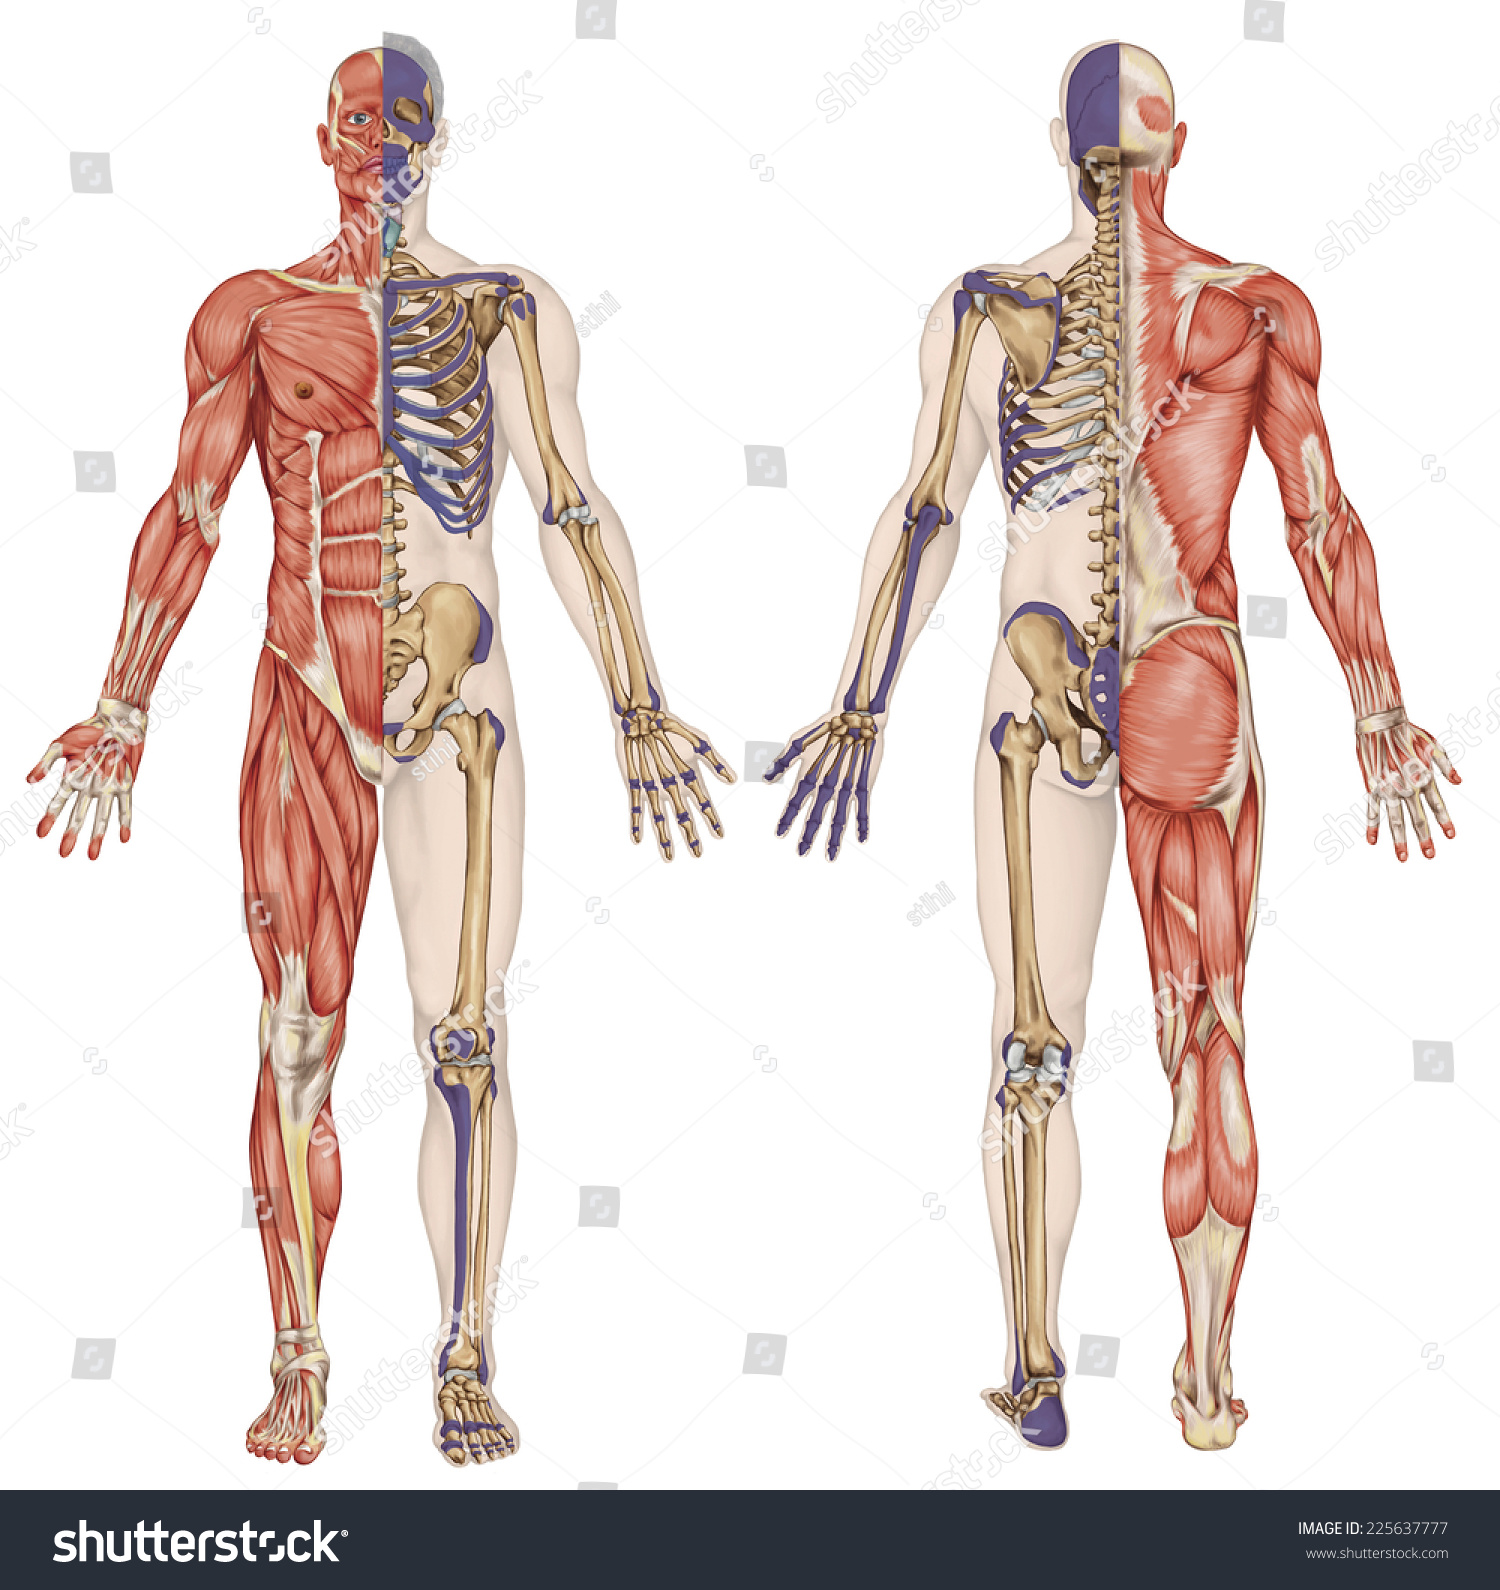 Anatomical Body Human Skeleton Anatomy Human Stock Illustration